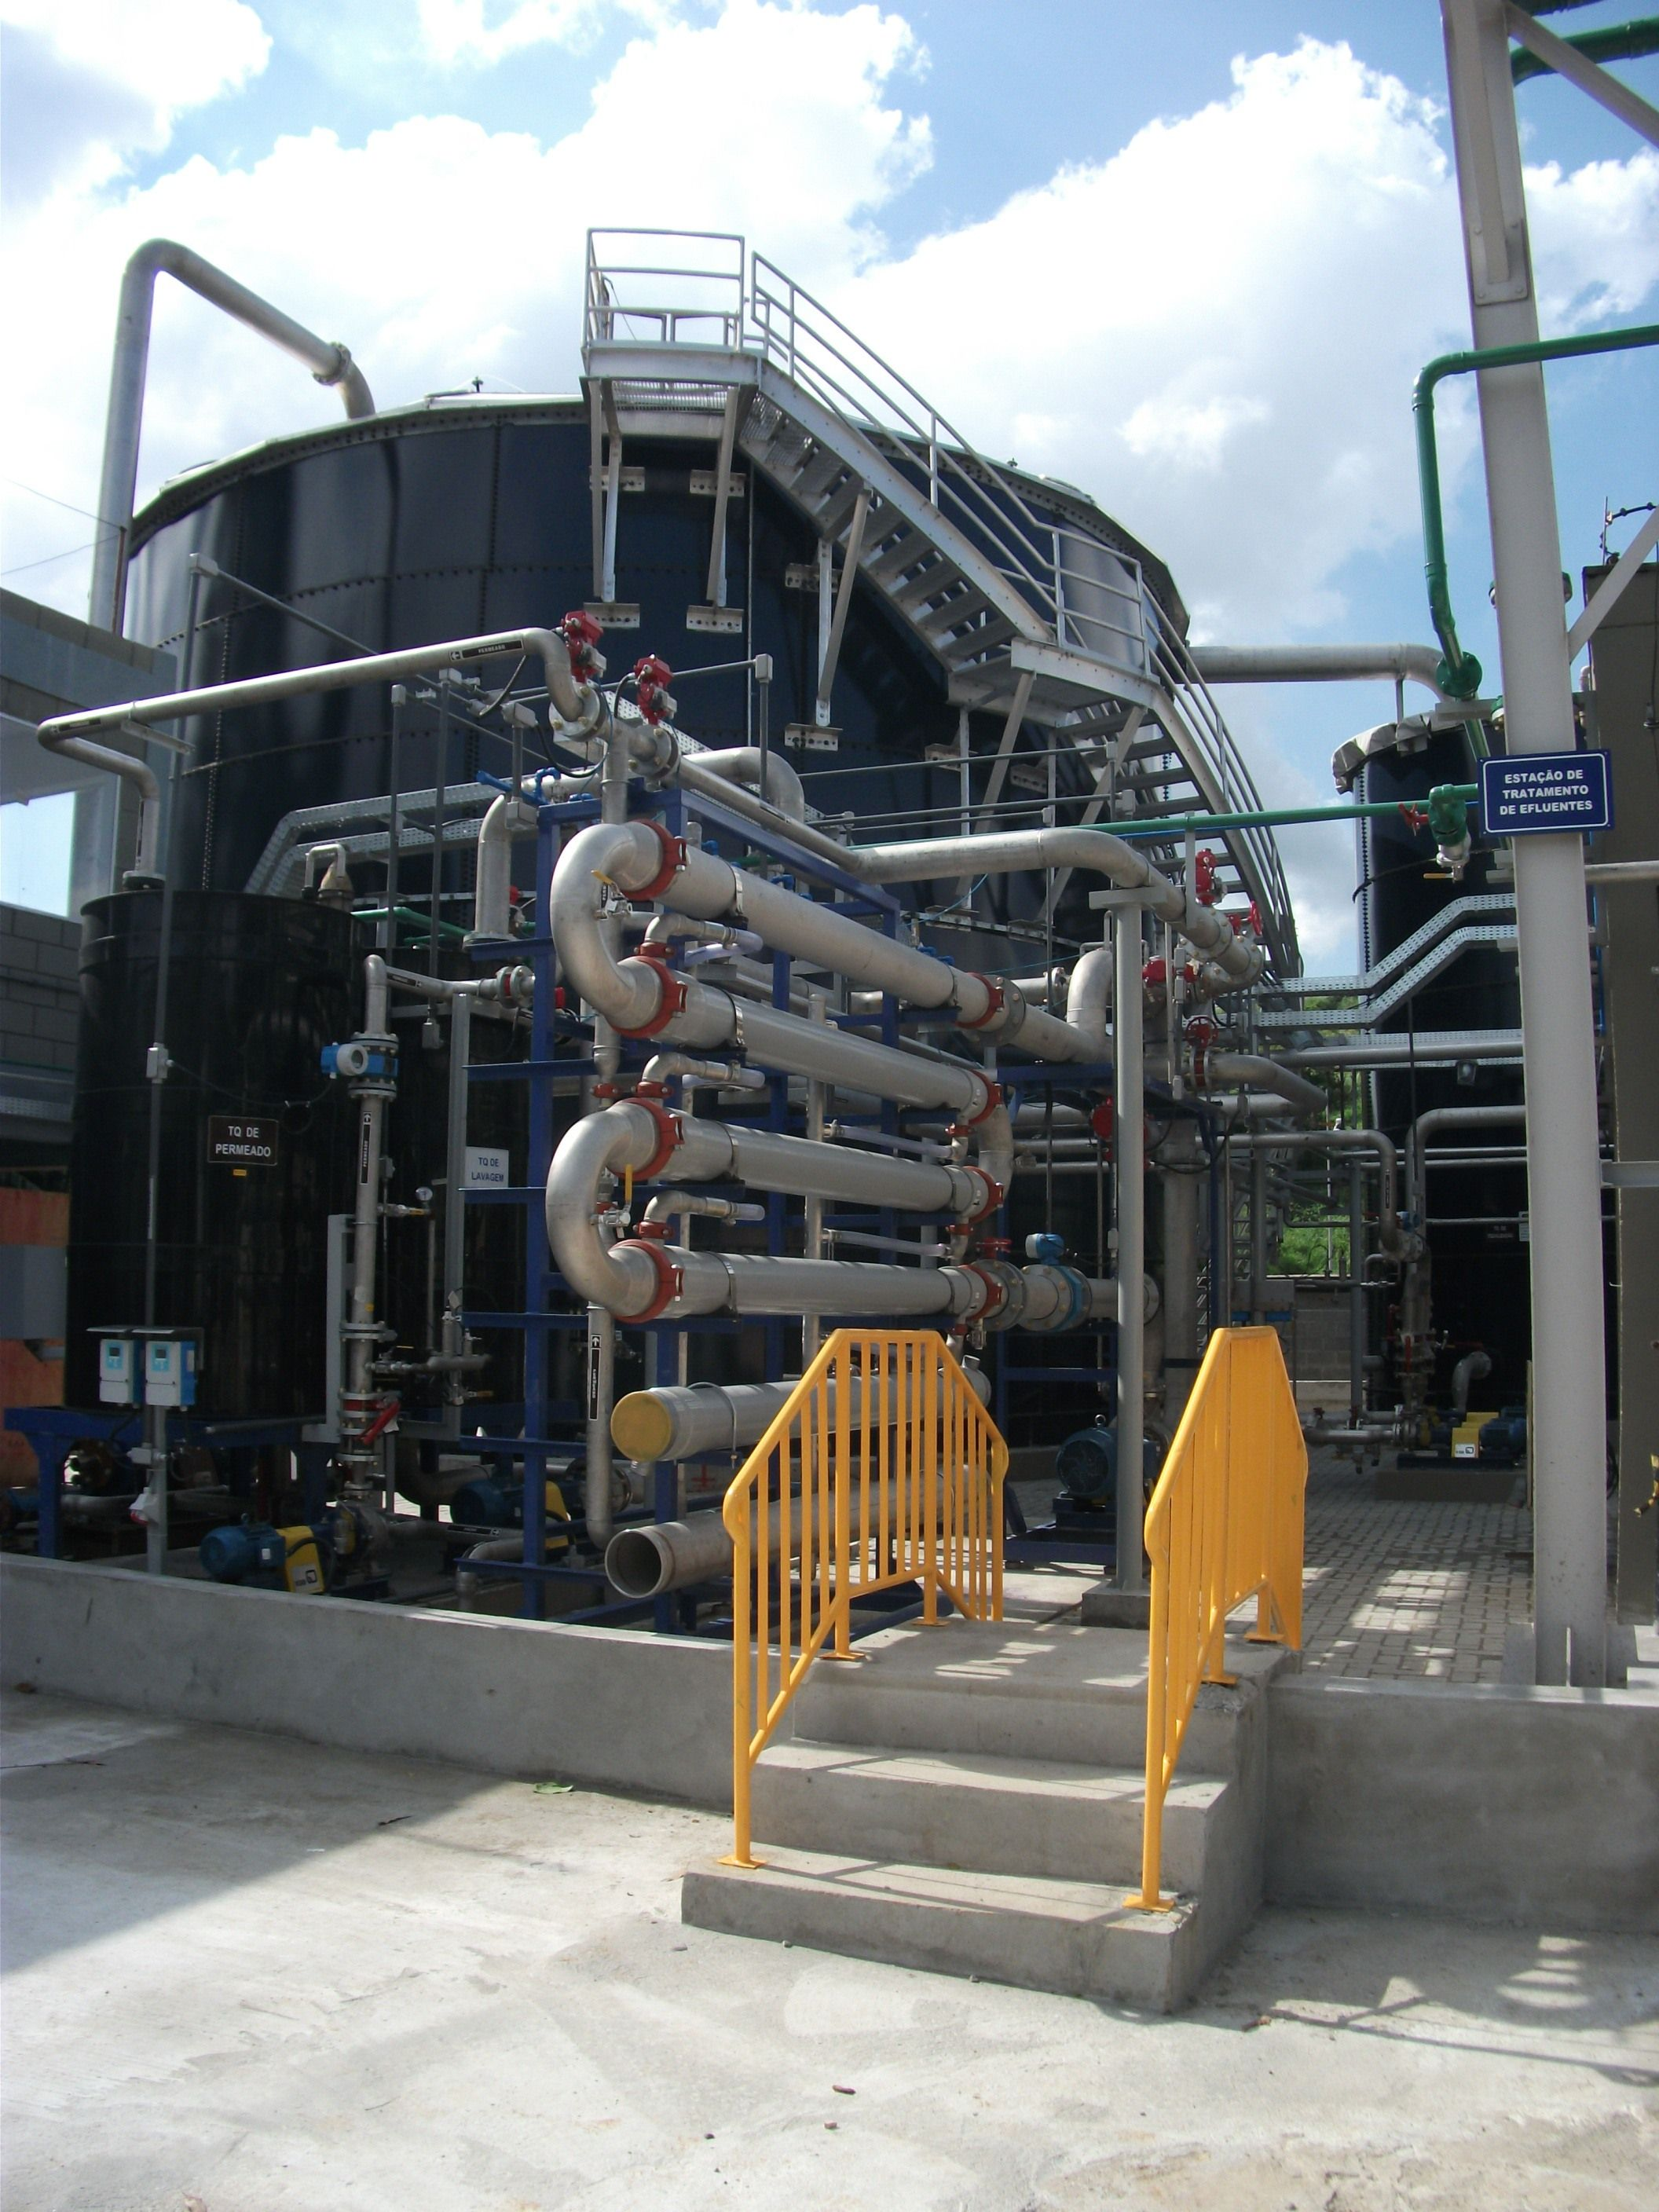 WEHRLE industrial wastewater treatment plants